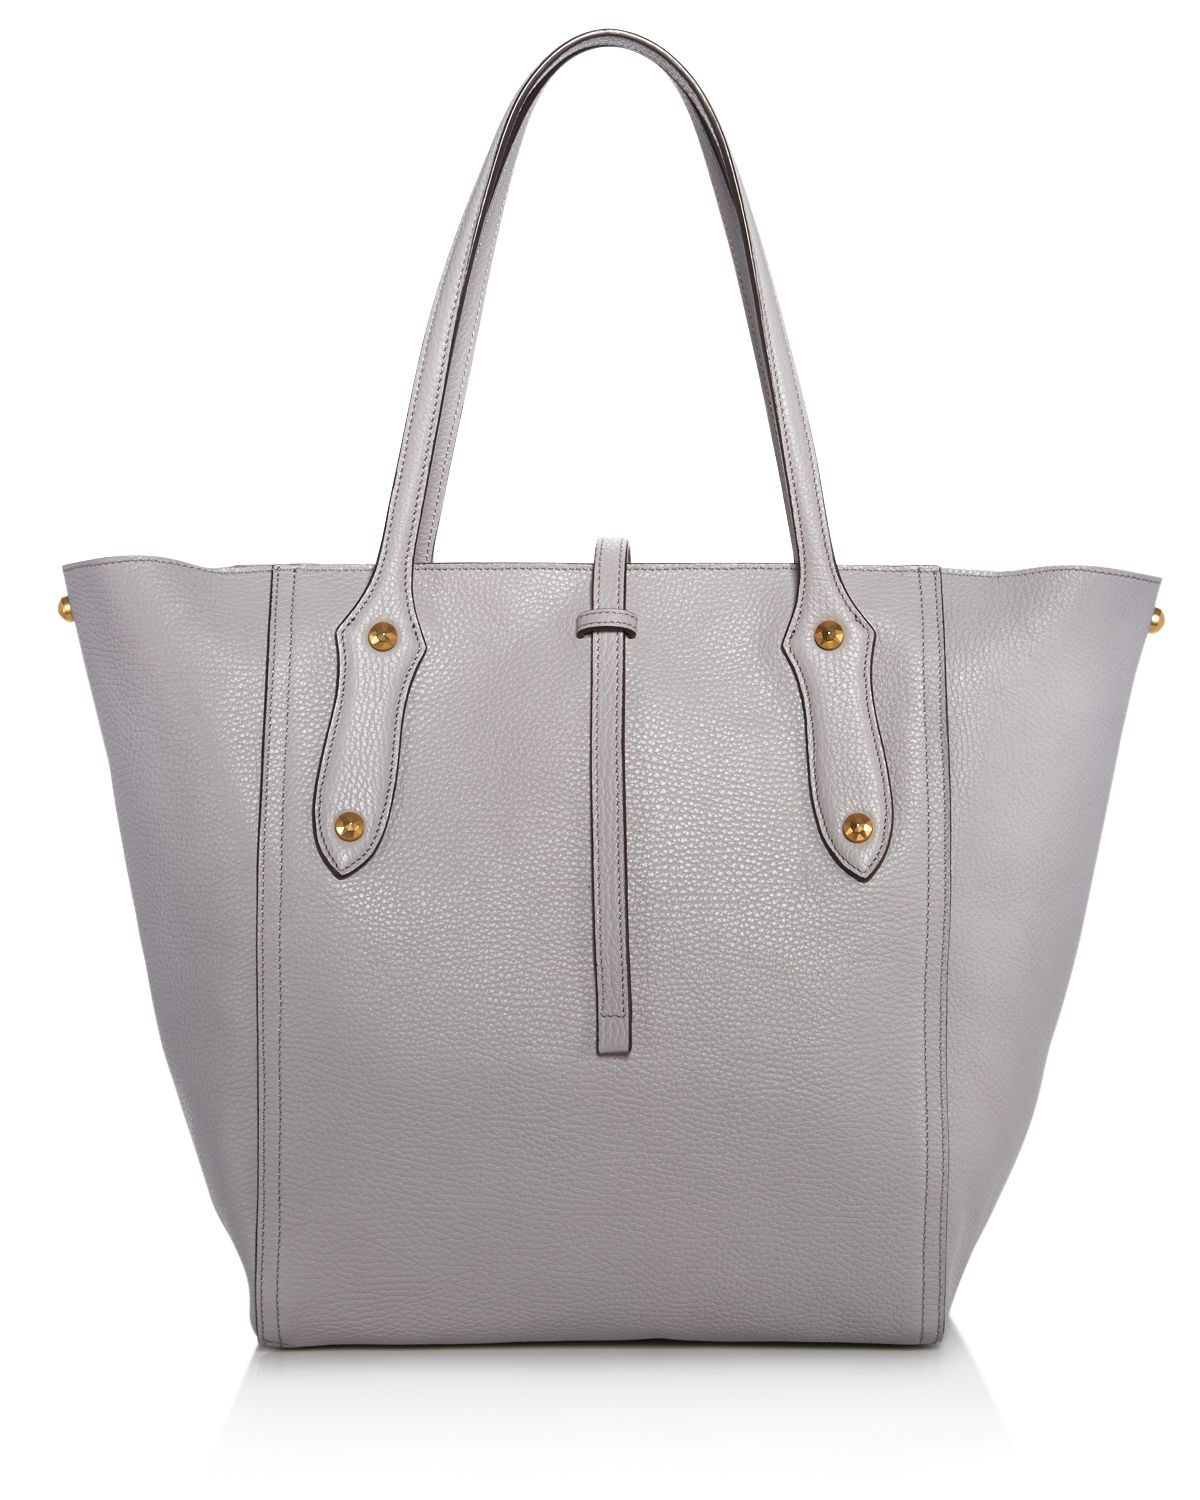 Bibi Leather Tote   100 Percents Exclusive by Annabel Ingall